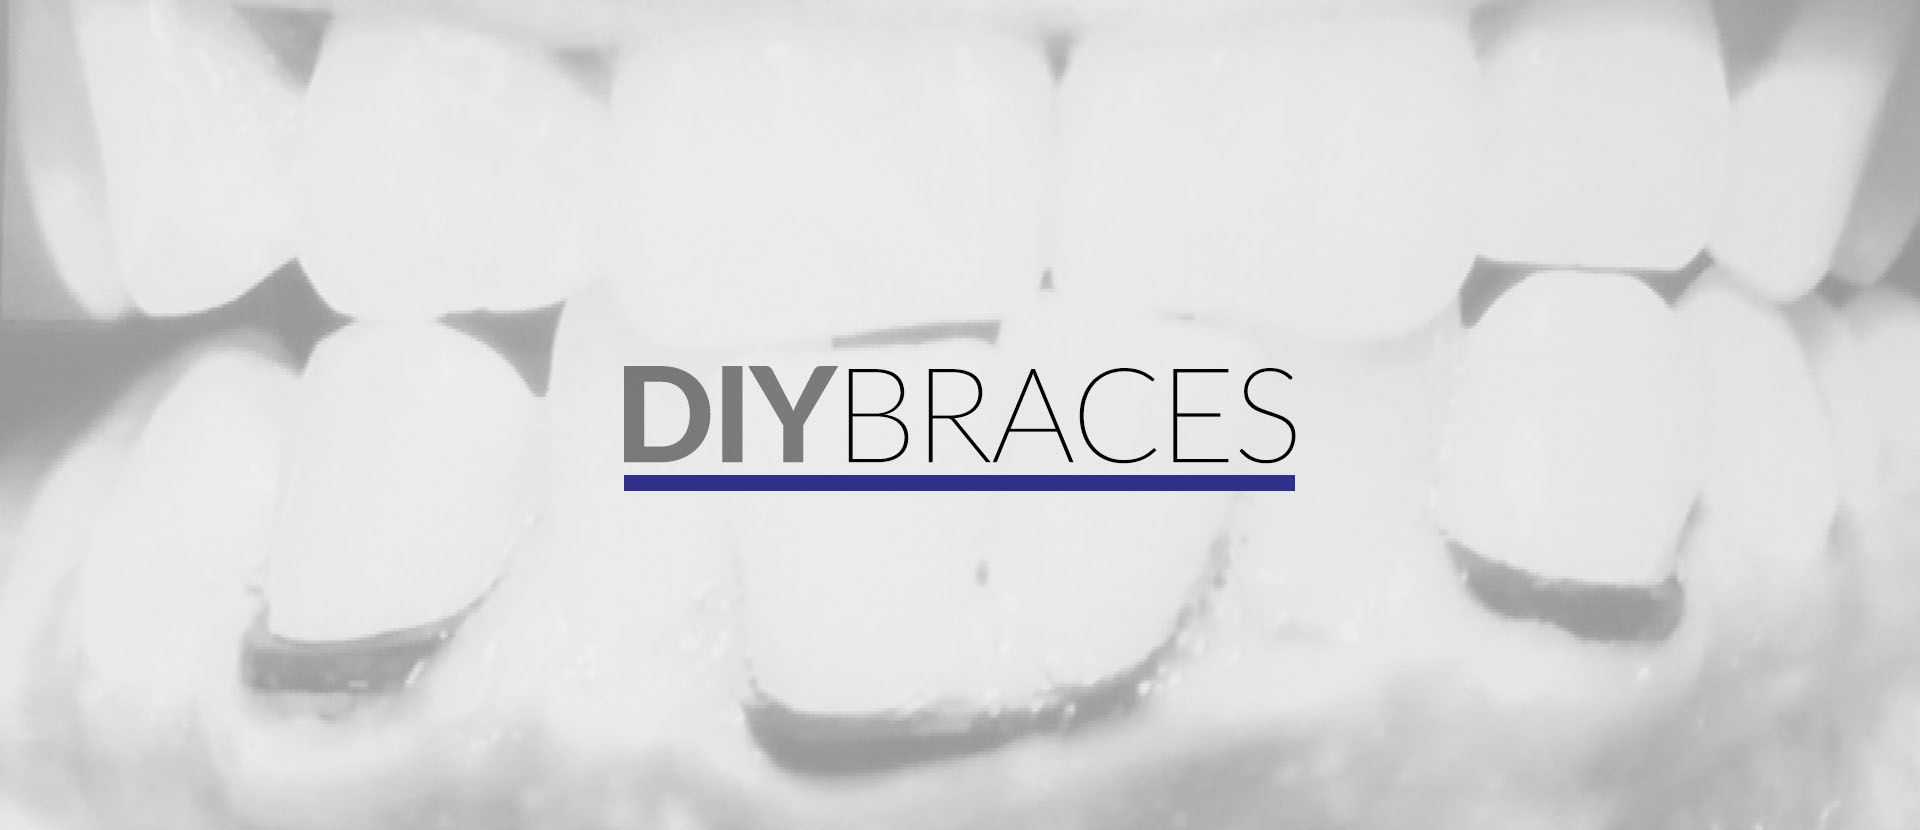 Feature diy braces yourcentralvalley ksee and kgpe are do it yourself videos online that supposedly teach you how to fix your teeth on your own but the doctors also say none of the methods are safe solutioingenieria Gallery